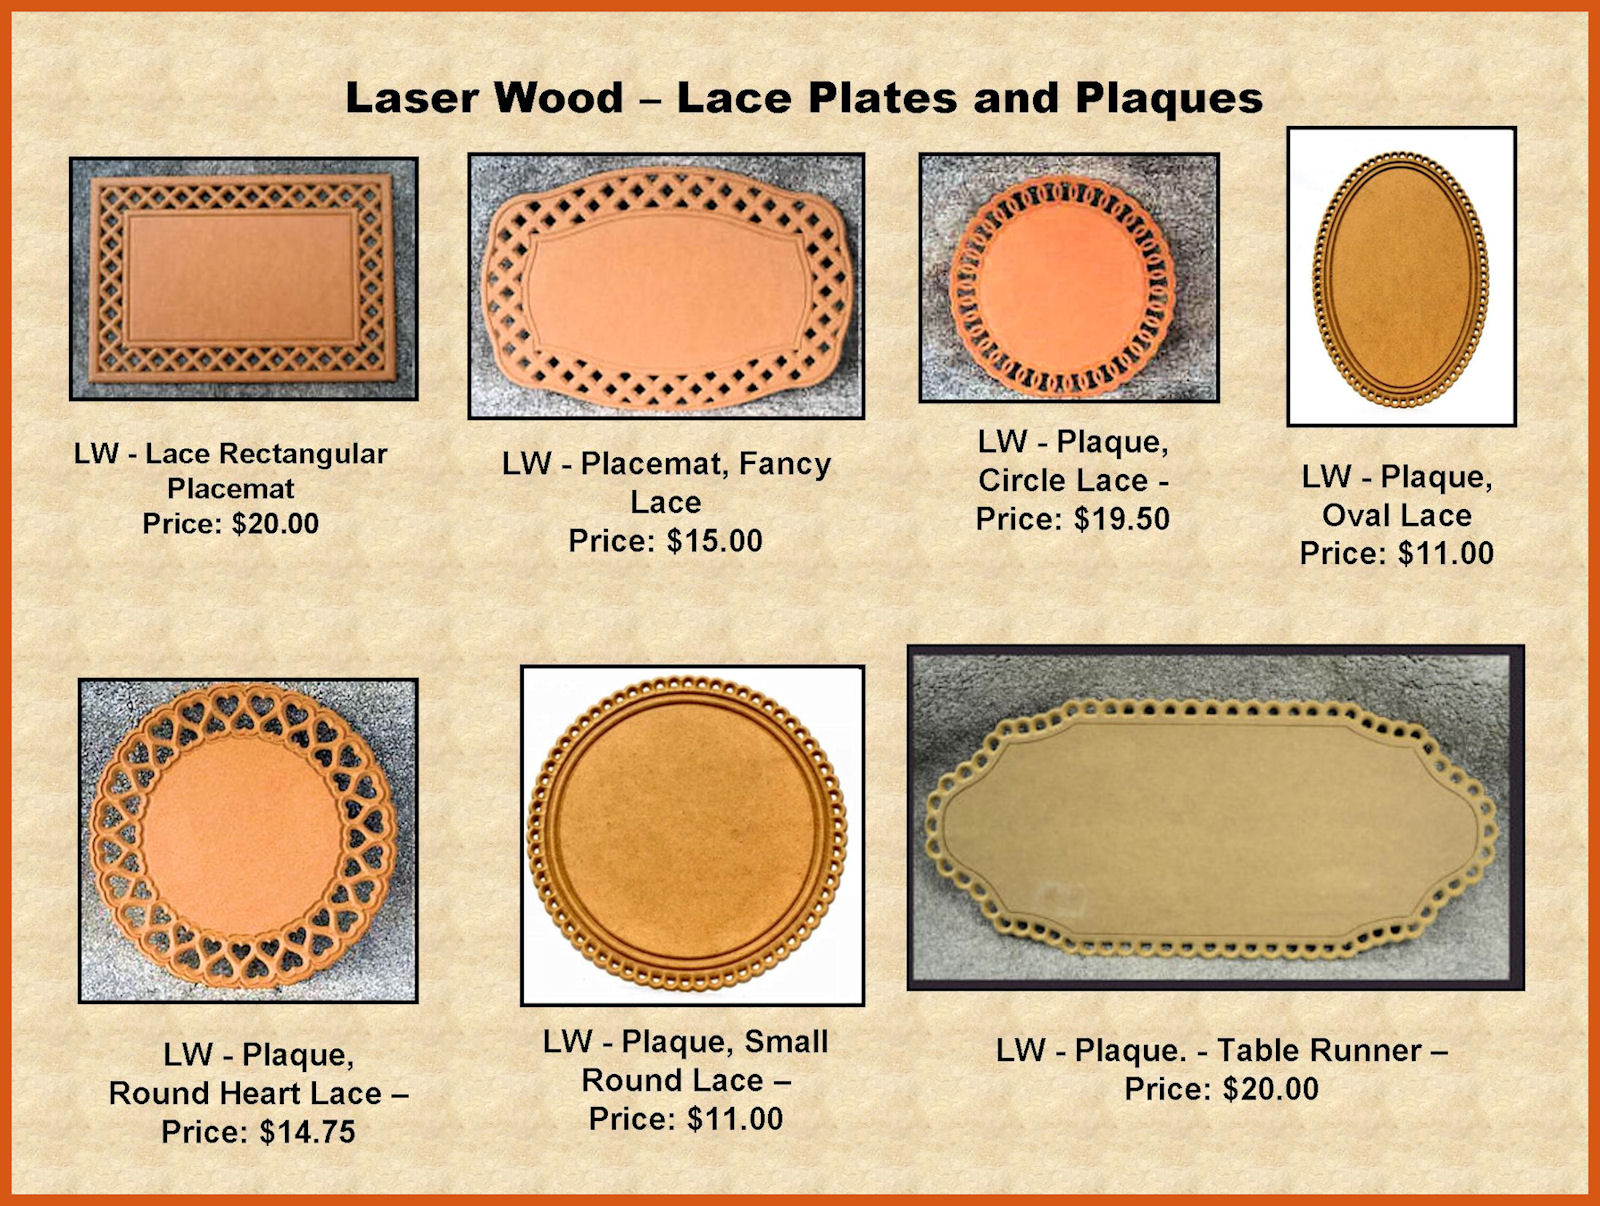 lw-lace-paltes-and-plaques-med.jpg